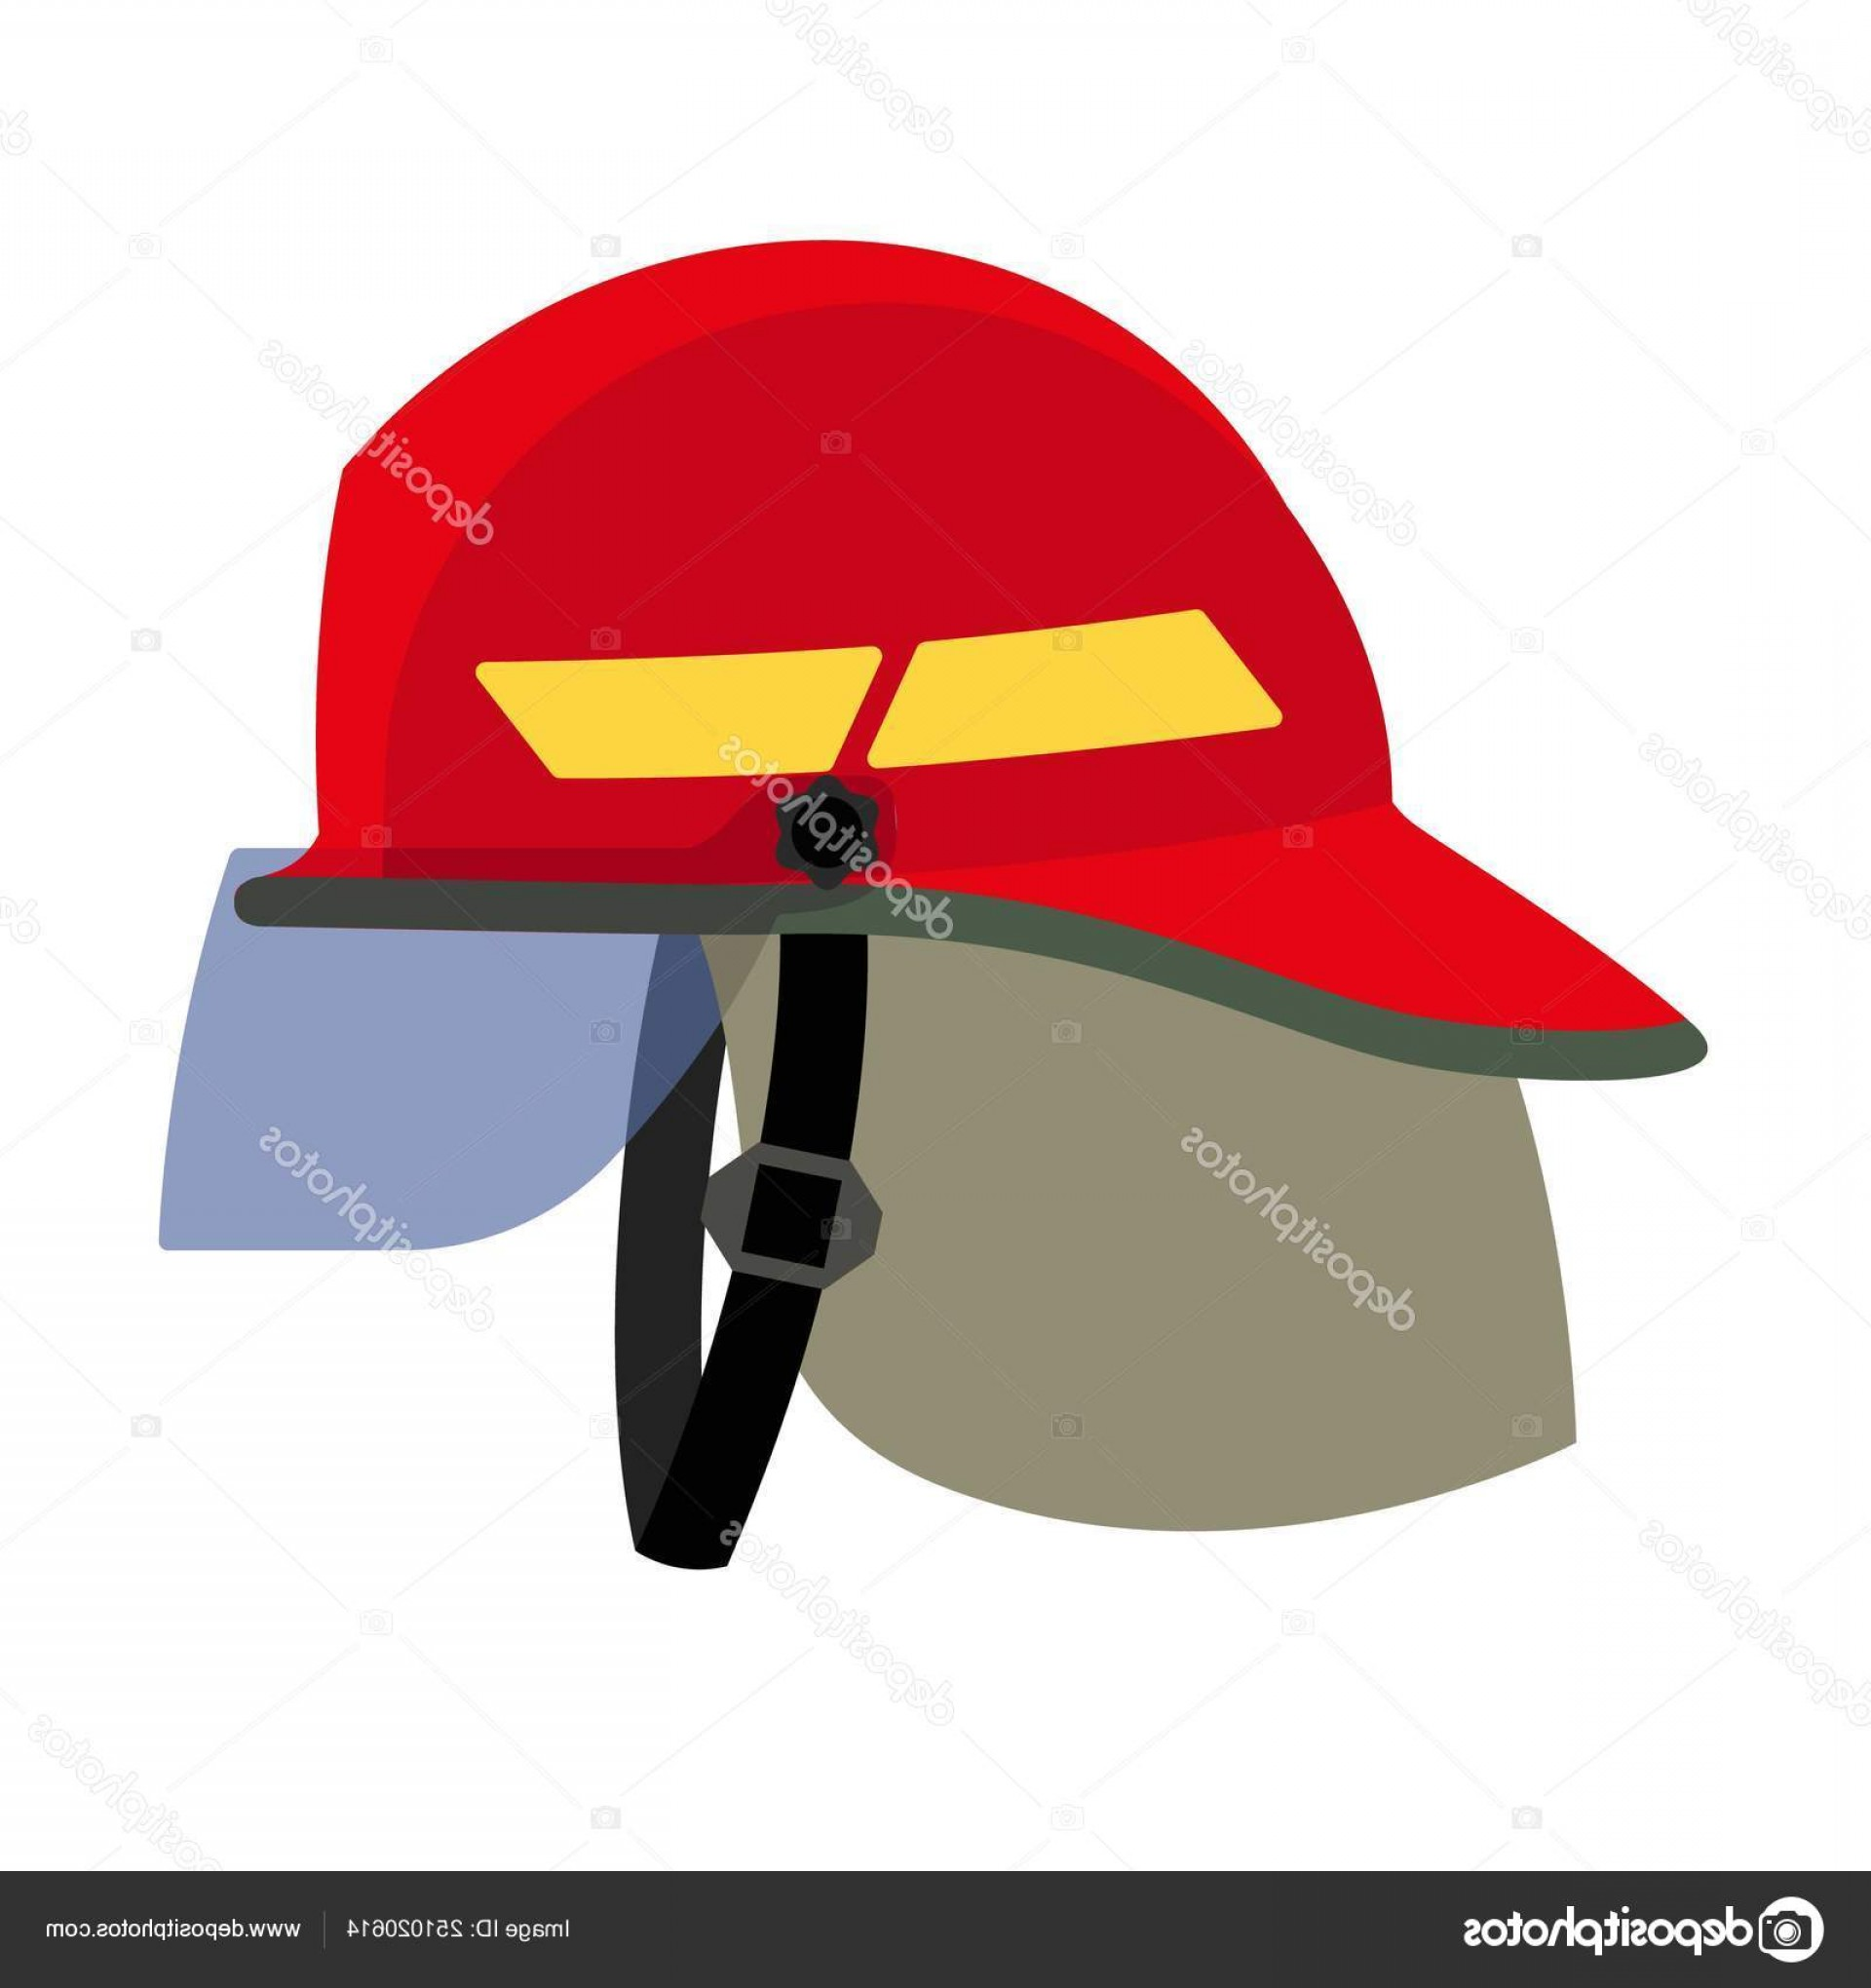 Fighter Helmet Vectors: Stock Illustration Fire Fighter Helmet Icon Flat